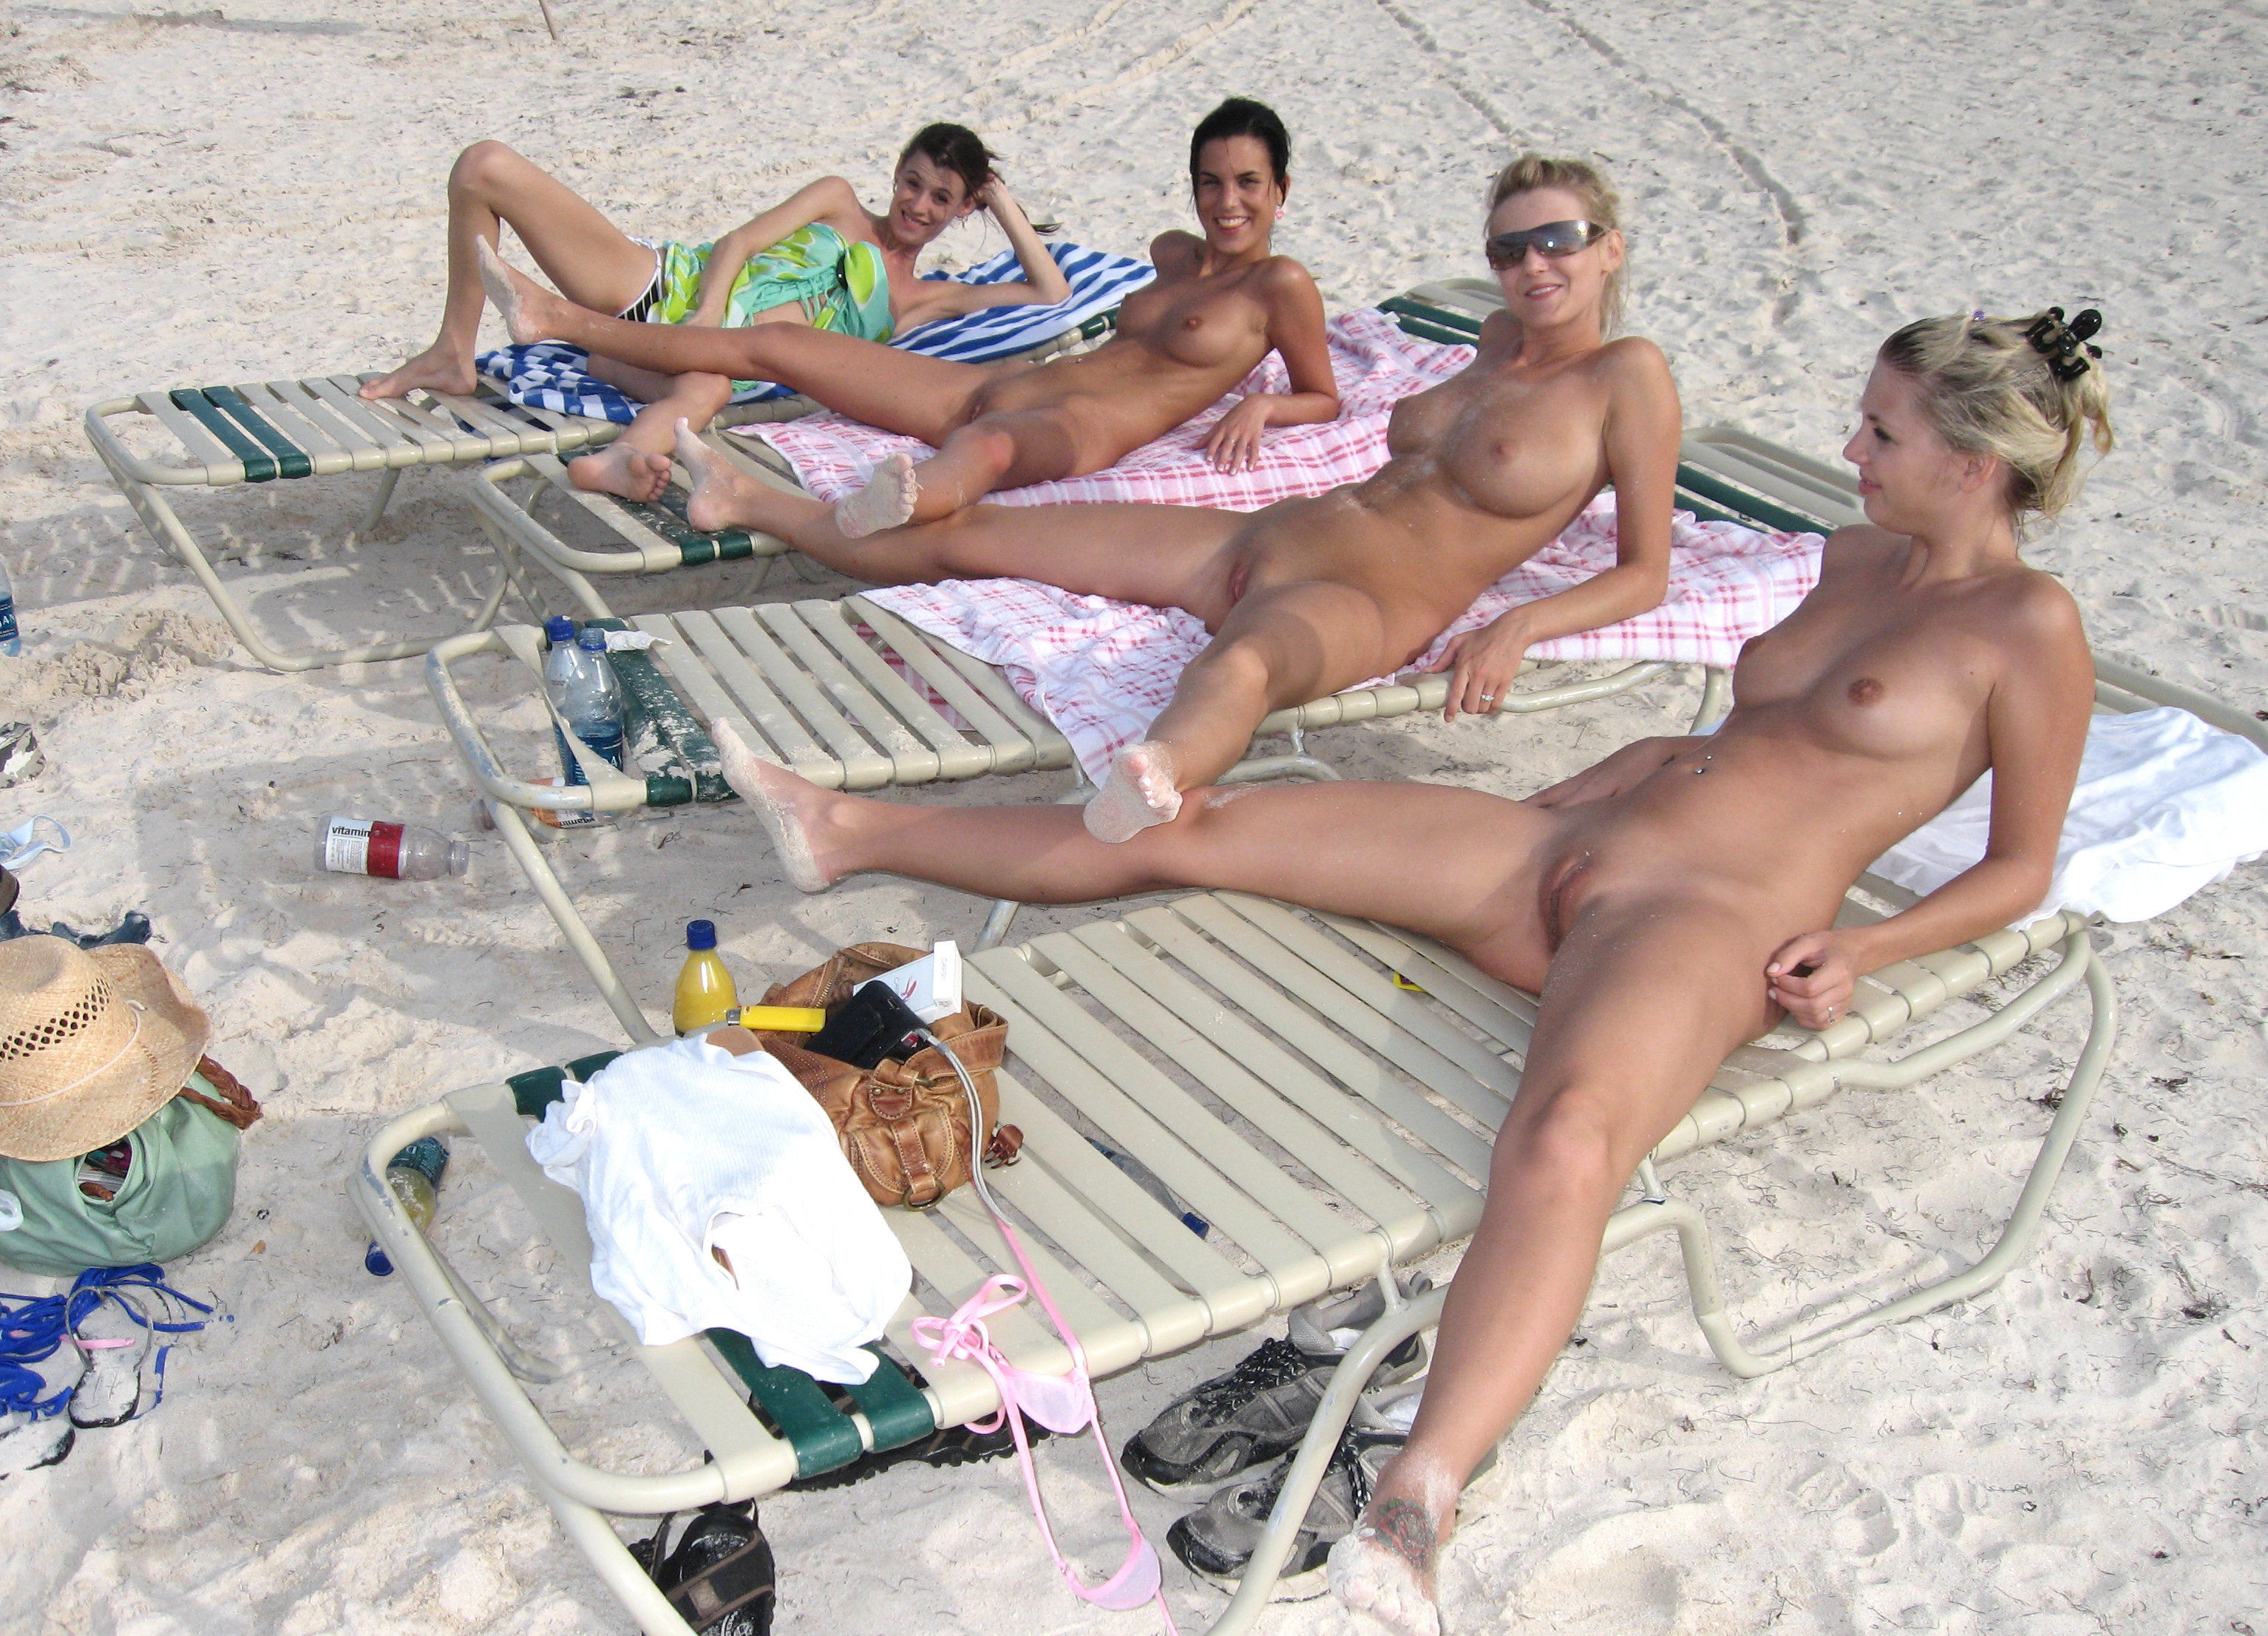 naked-girls-in-group-mix-vol3-37